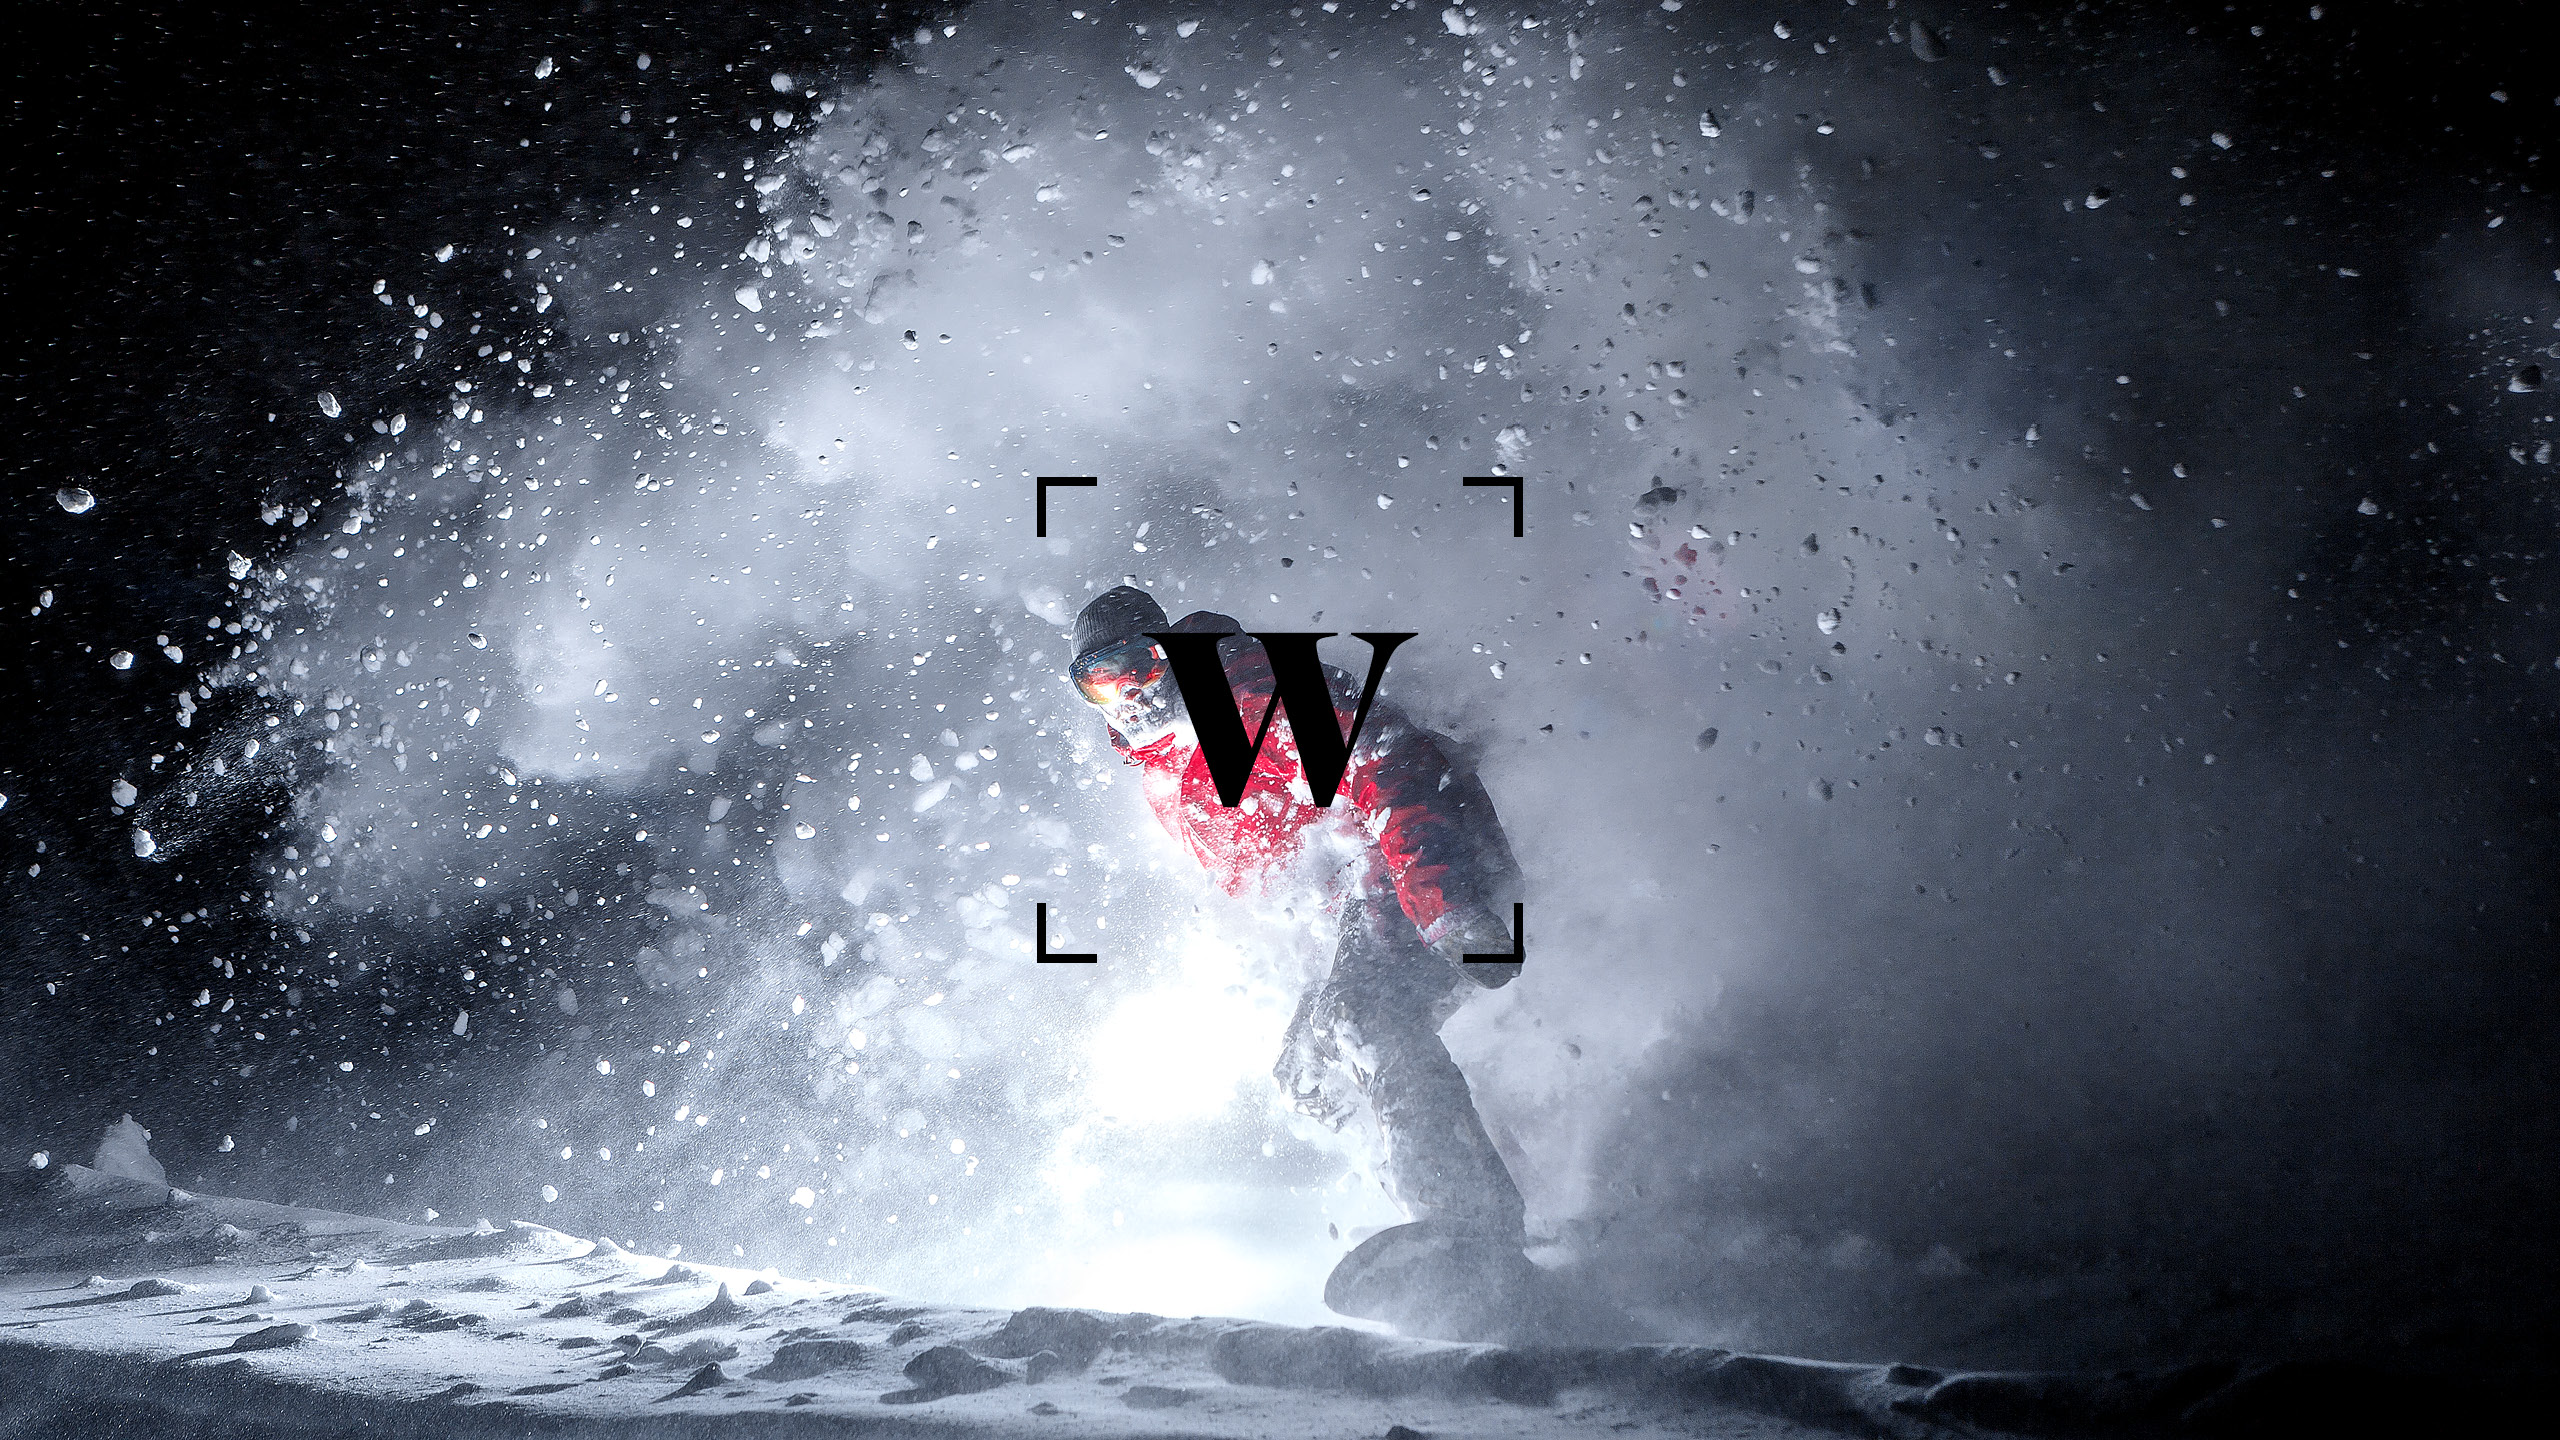 Wallpaper Wednesday Night Shift TransWorld SNOWboarding 2560x1440